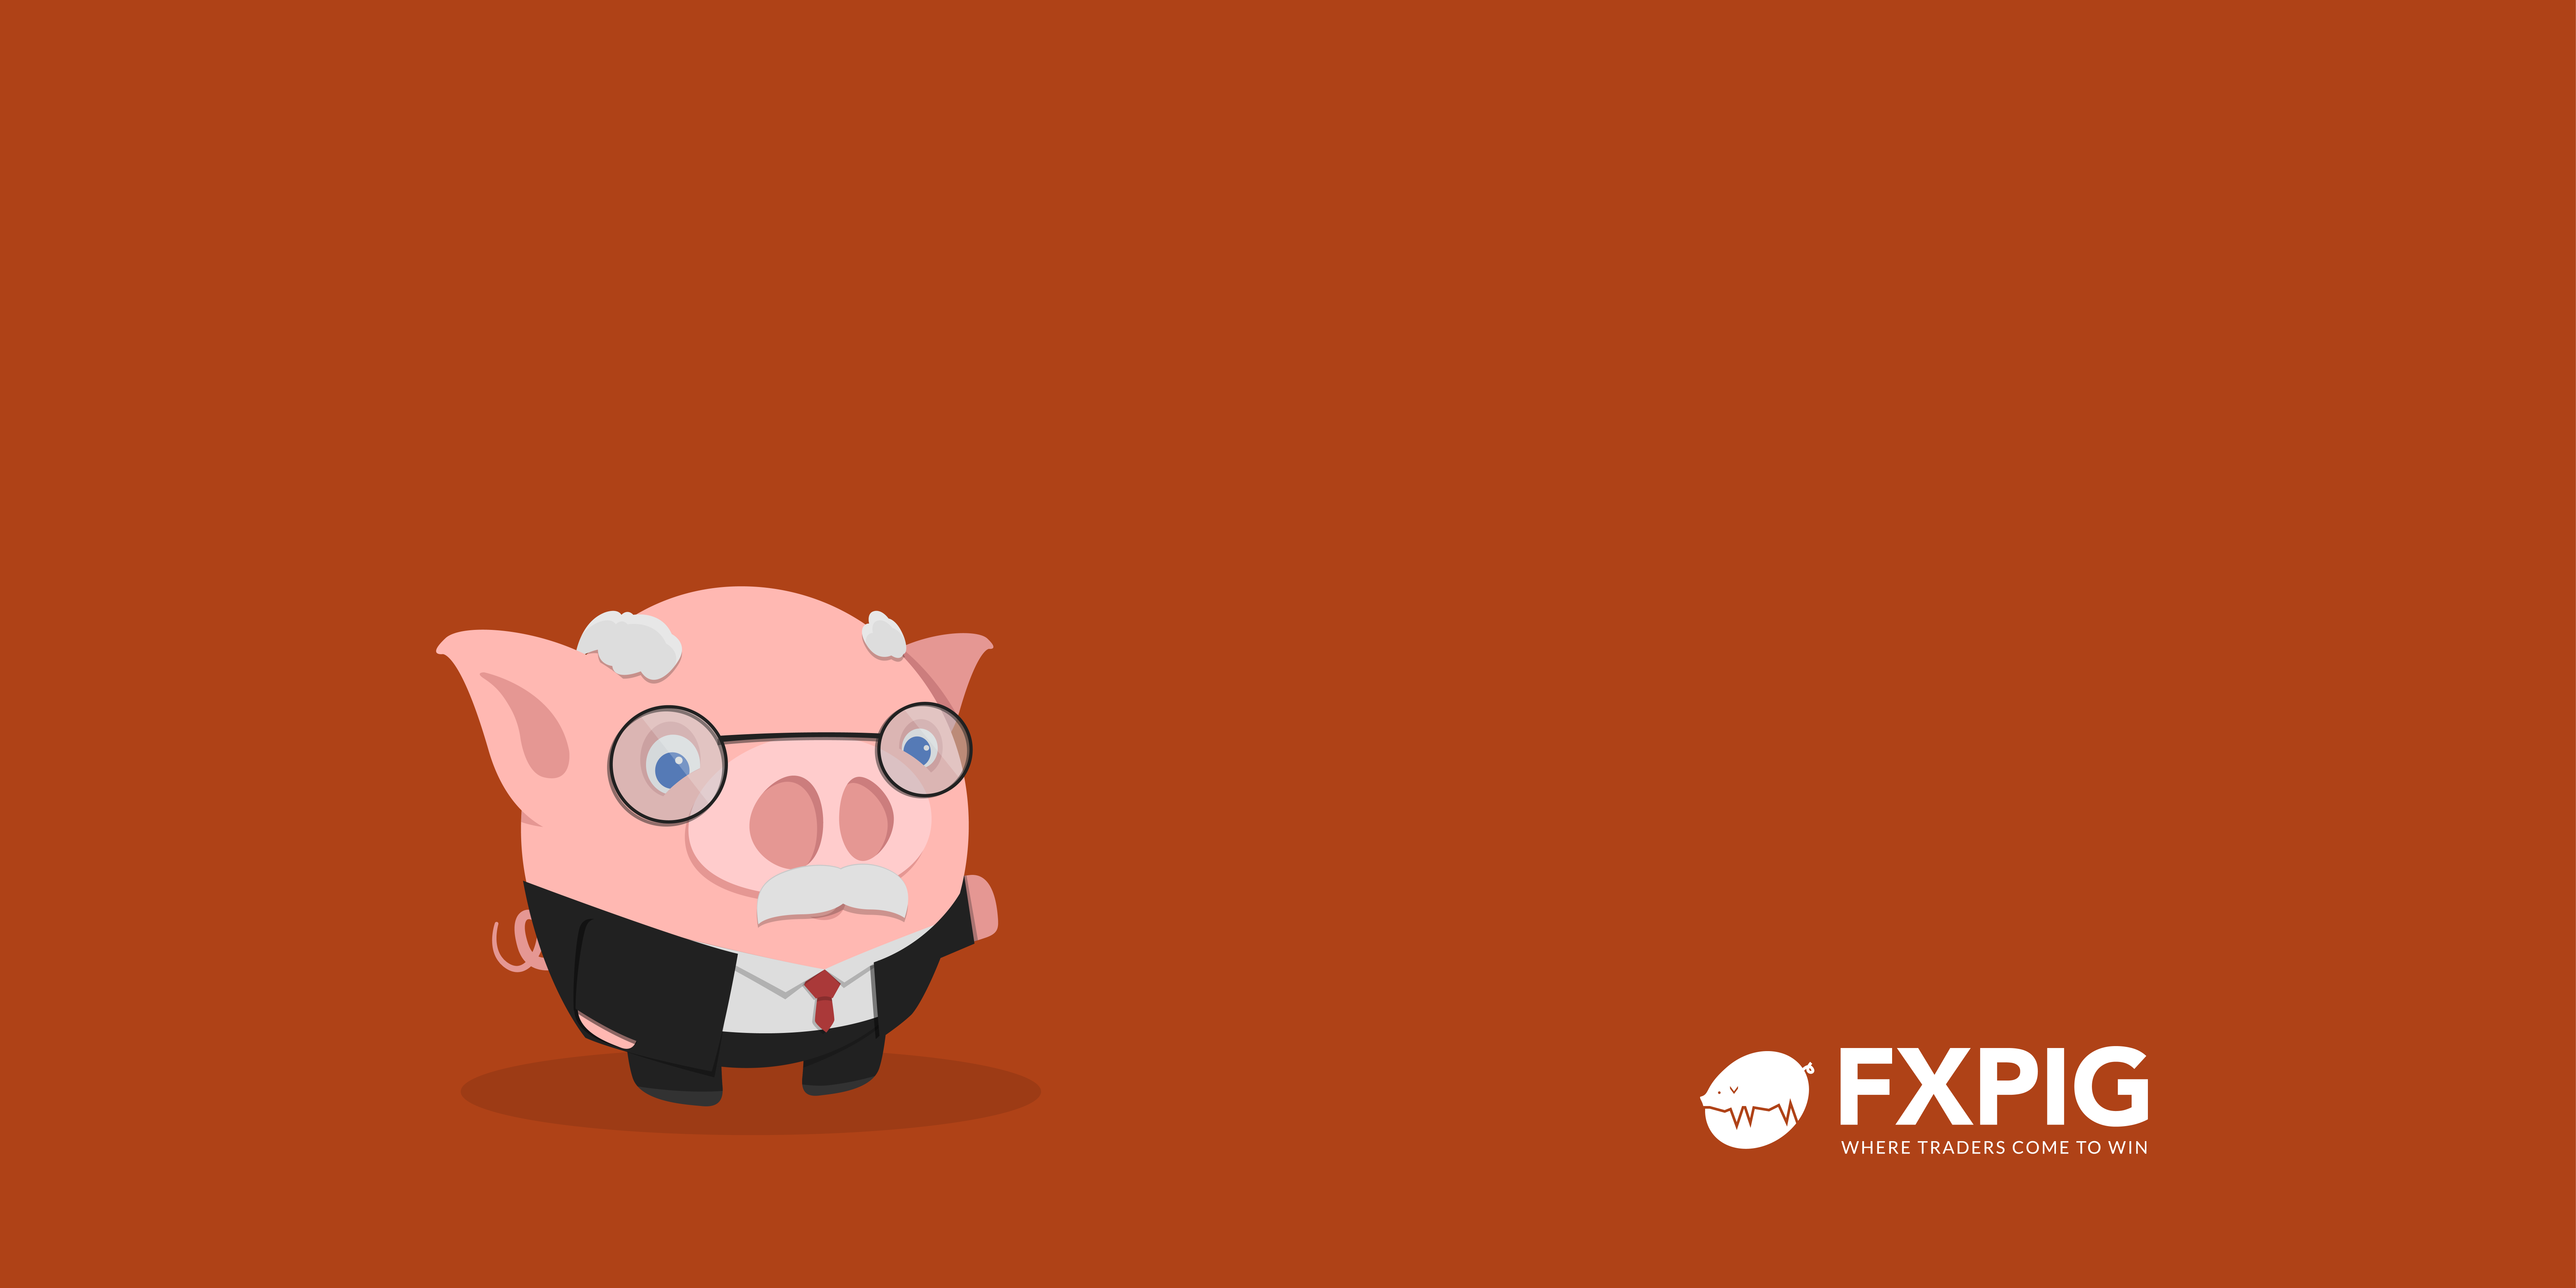 FOREX_trading-quote-pig-insider_FXPIG